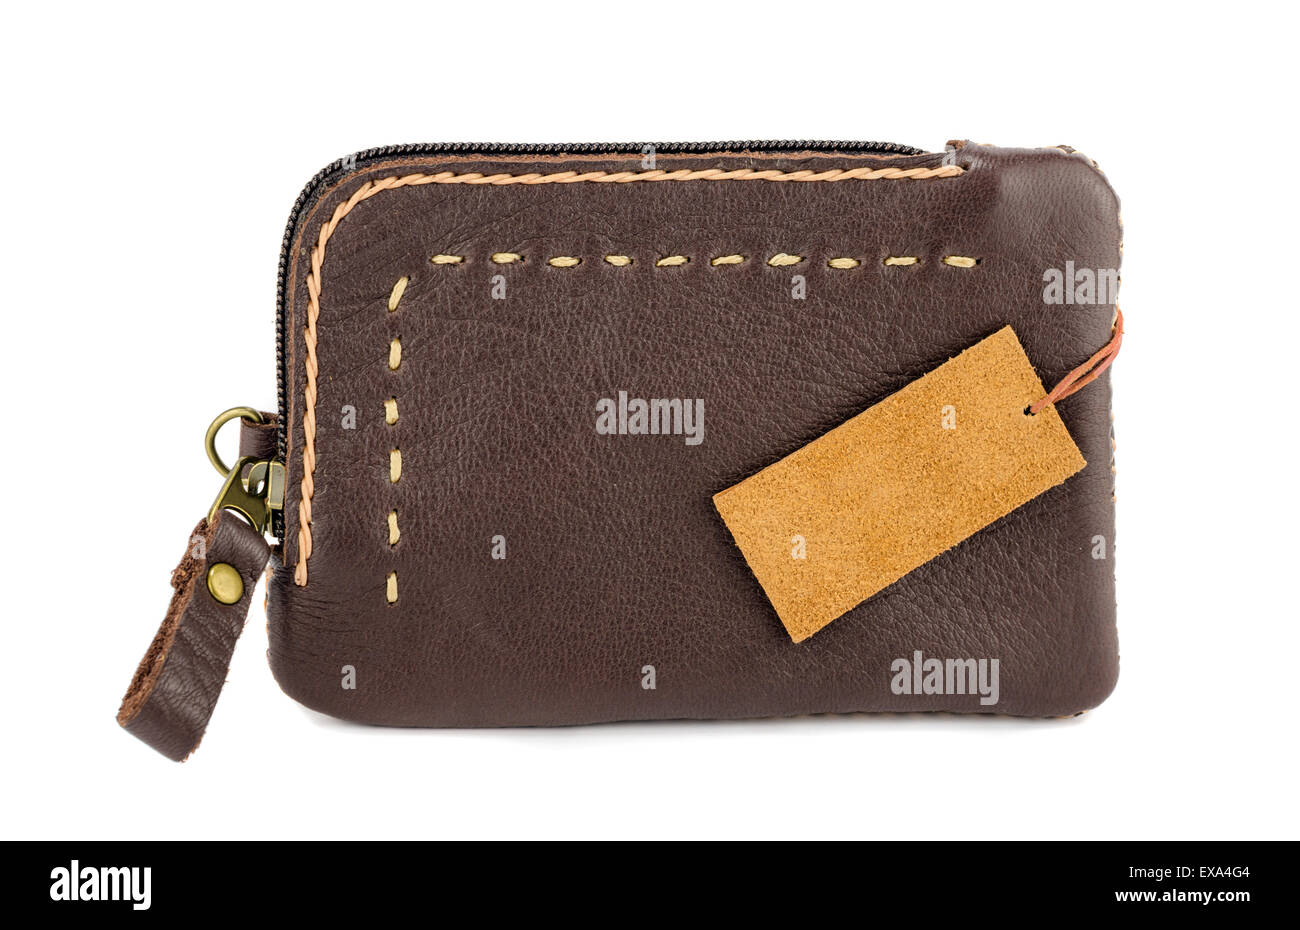 Leather wallet on White background. - Stock Image